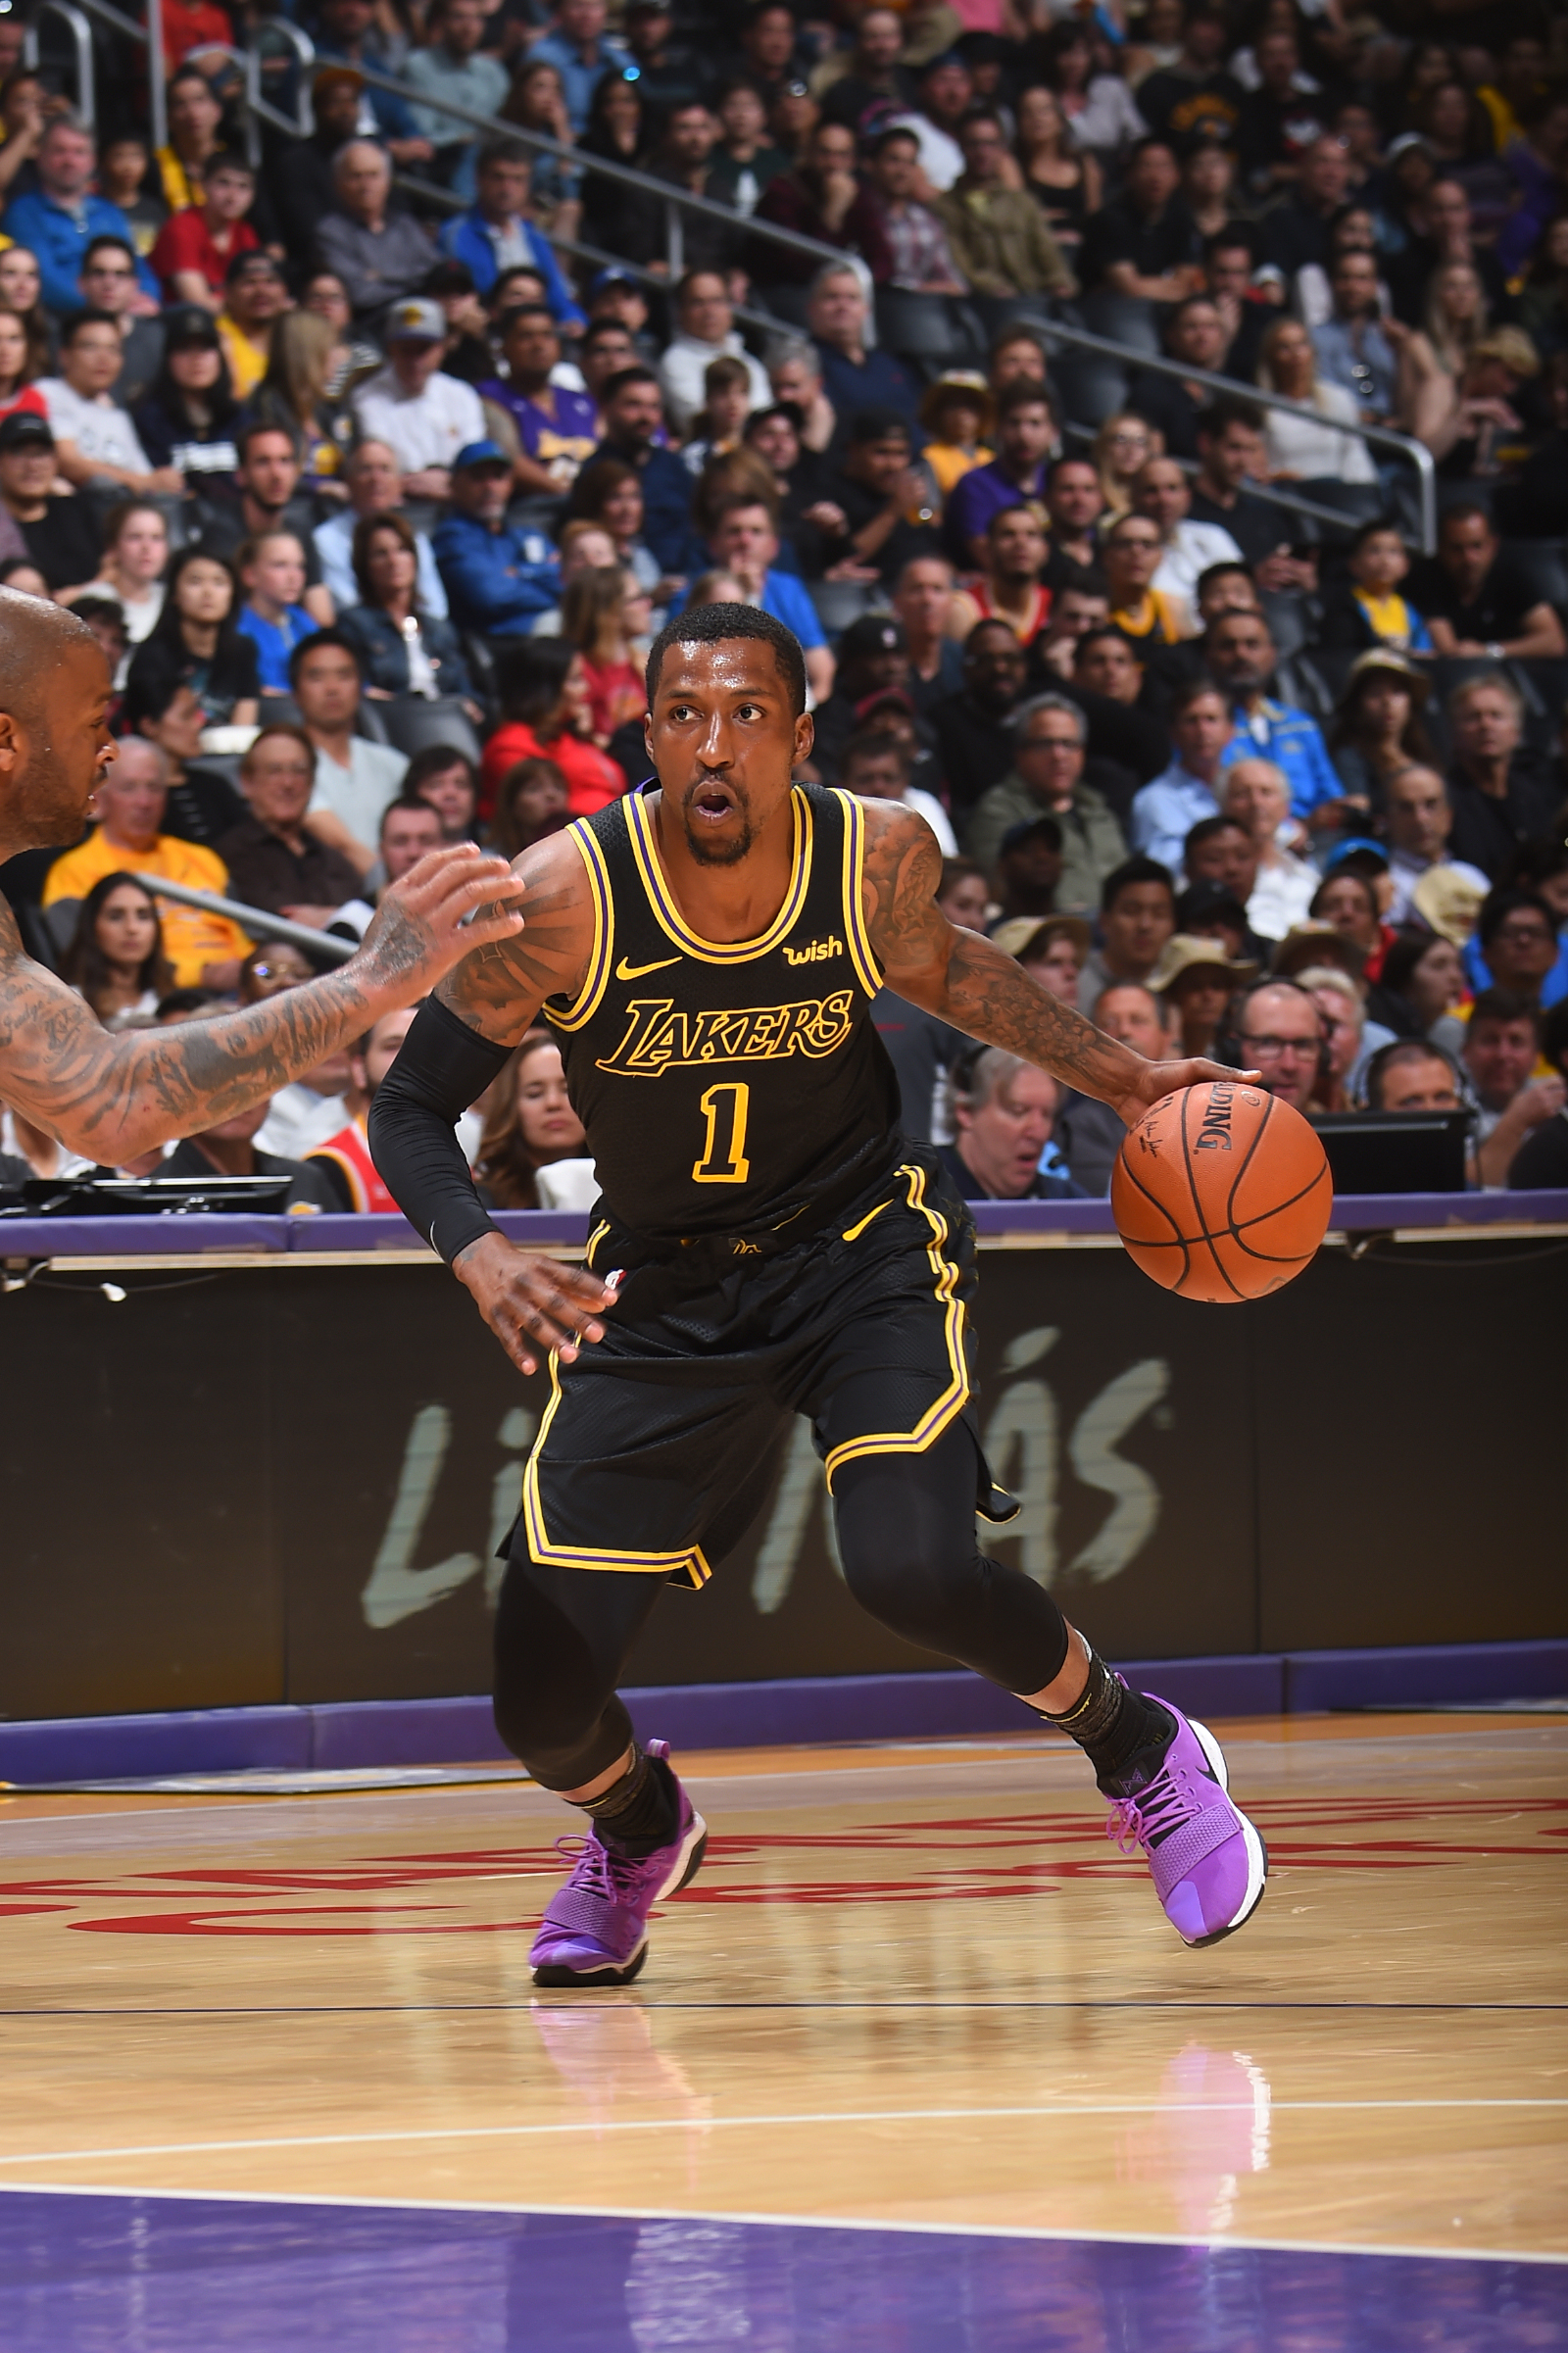 Kentavious Caldwell-Pope #1 of the Los Angeles Lakers handles the ball against the Houston Rockets on April 10, 2017 at STAPLES Center in Los Angeles, California.